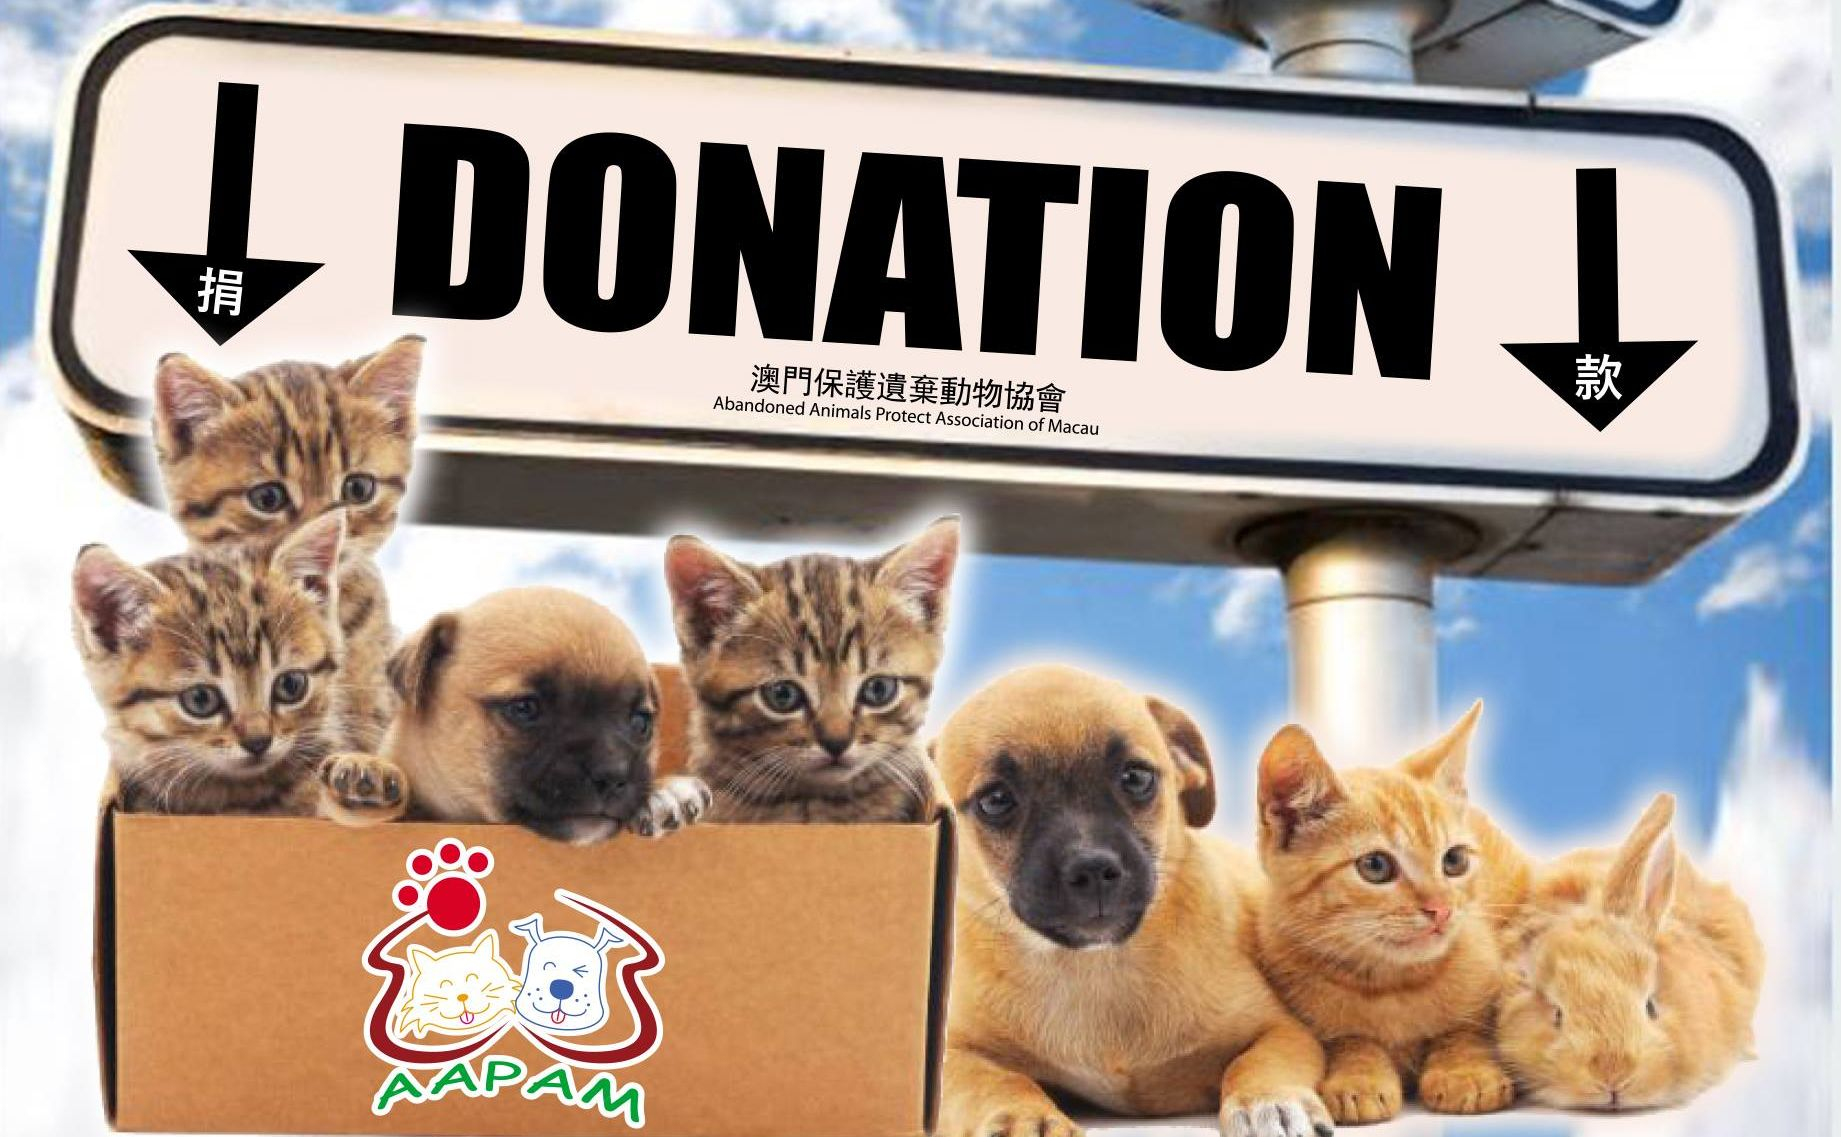 aapam abandoned animals protect association of macau how to help animals in macau lifestyle